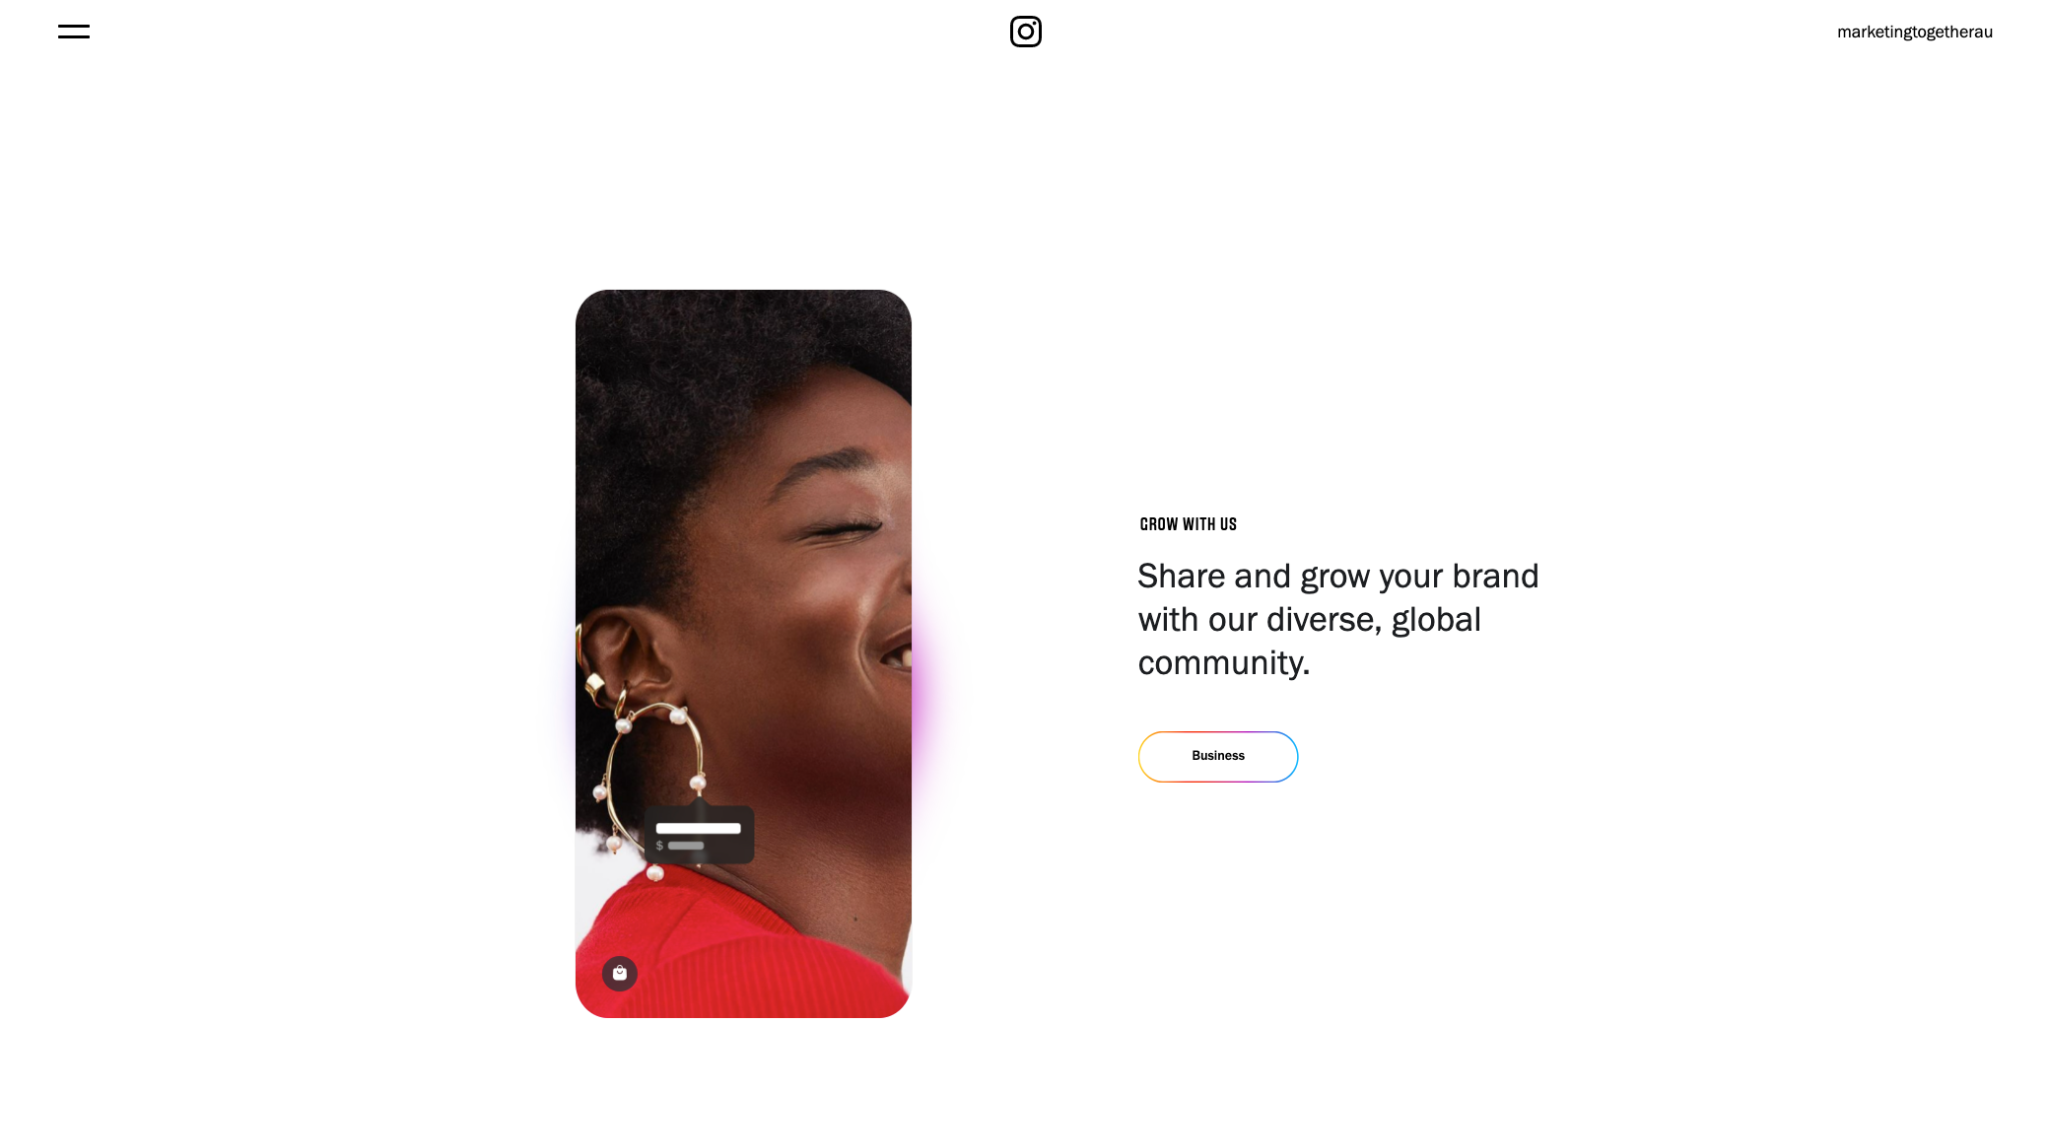 Screenshot of the instagram website homepage showing a dark skinned woman wearing a bright red top with golden earrings